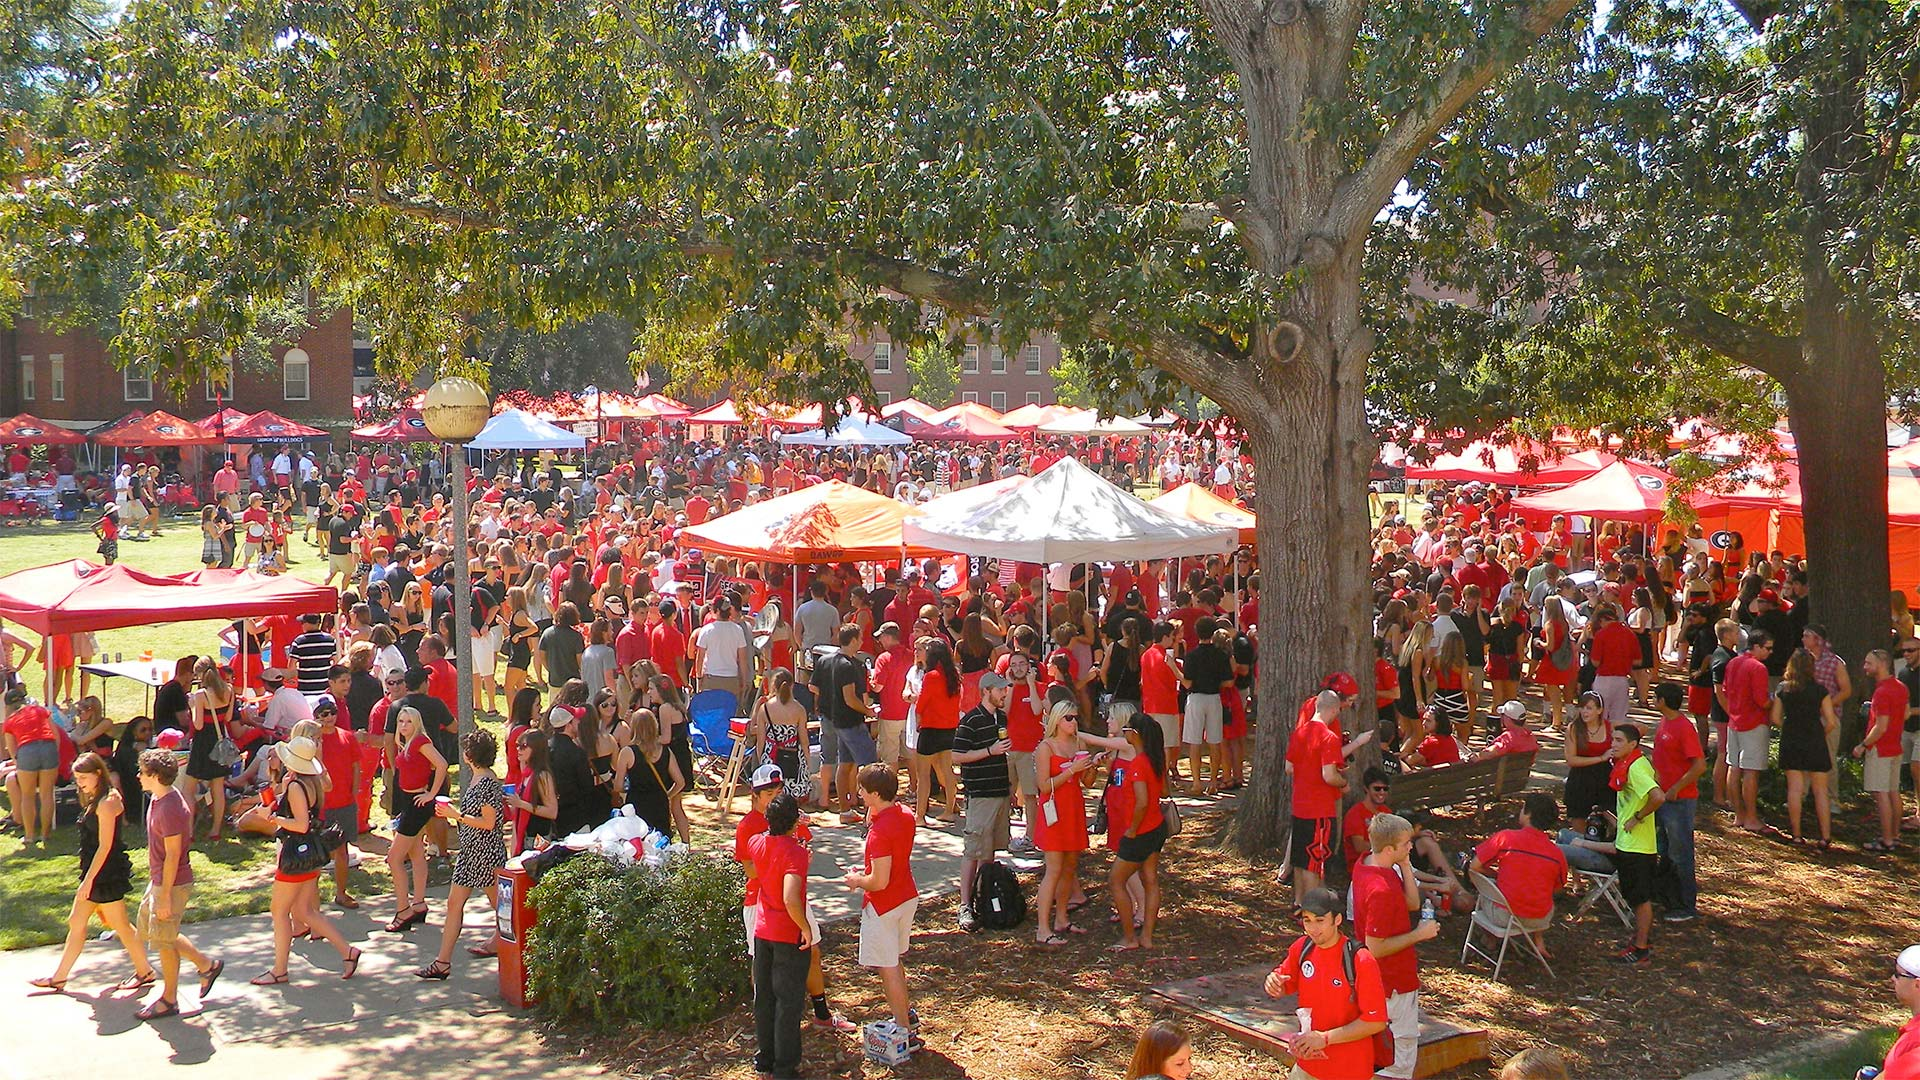 2019 Georgia Football Game Day Central on university of houston tailgating, university of southern mississippi tailgating, usc trojans tailgating, western kentucky university tailgating, stanford university tailgating, south carolina football tailgating, oklahoma university tailgating, university of south alabama tailgating, ohio university tailgating, university of illinois waterless tattoos, university of florida tailgating, seven south tailgating, auburn university tailgating, university of washington tailgating, university south carolina gamecocks, university of kentucky tailgating, university of alabama tailgate recipes,